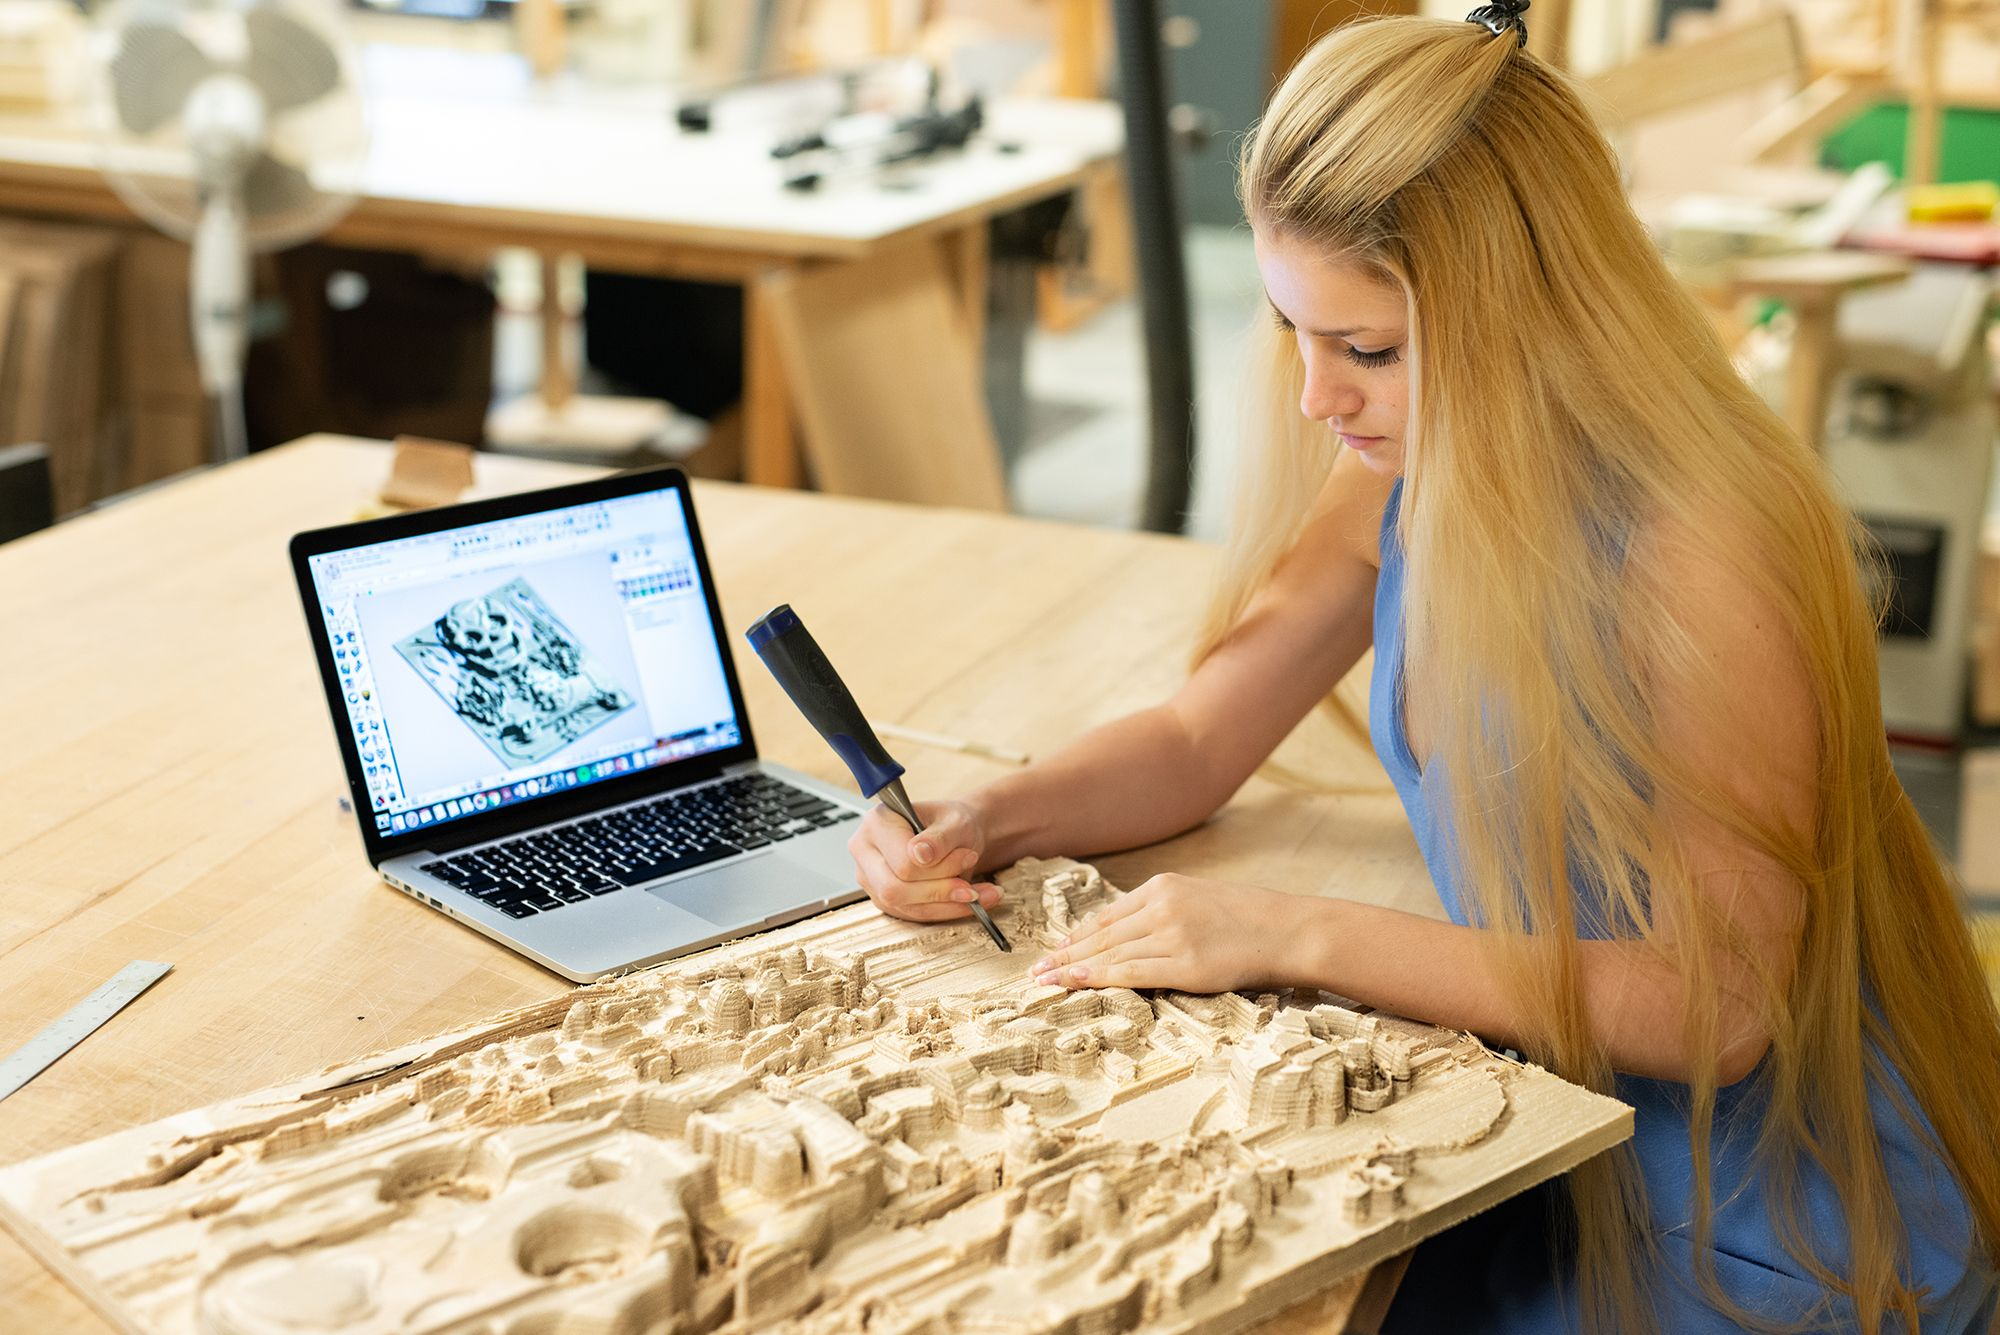 A student cleaning up her topographical CNC wood cutting with a small chisel.